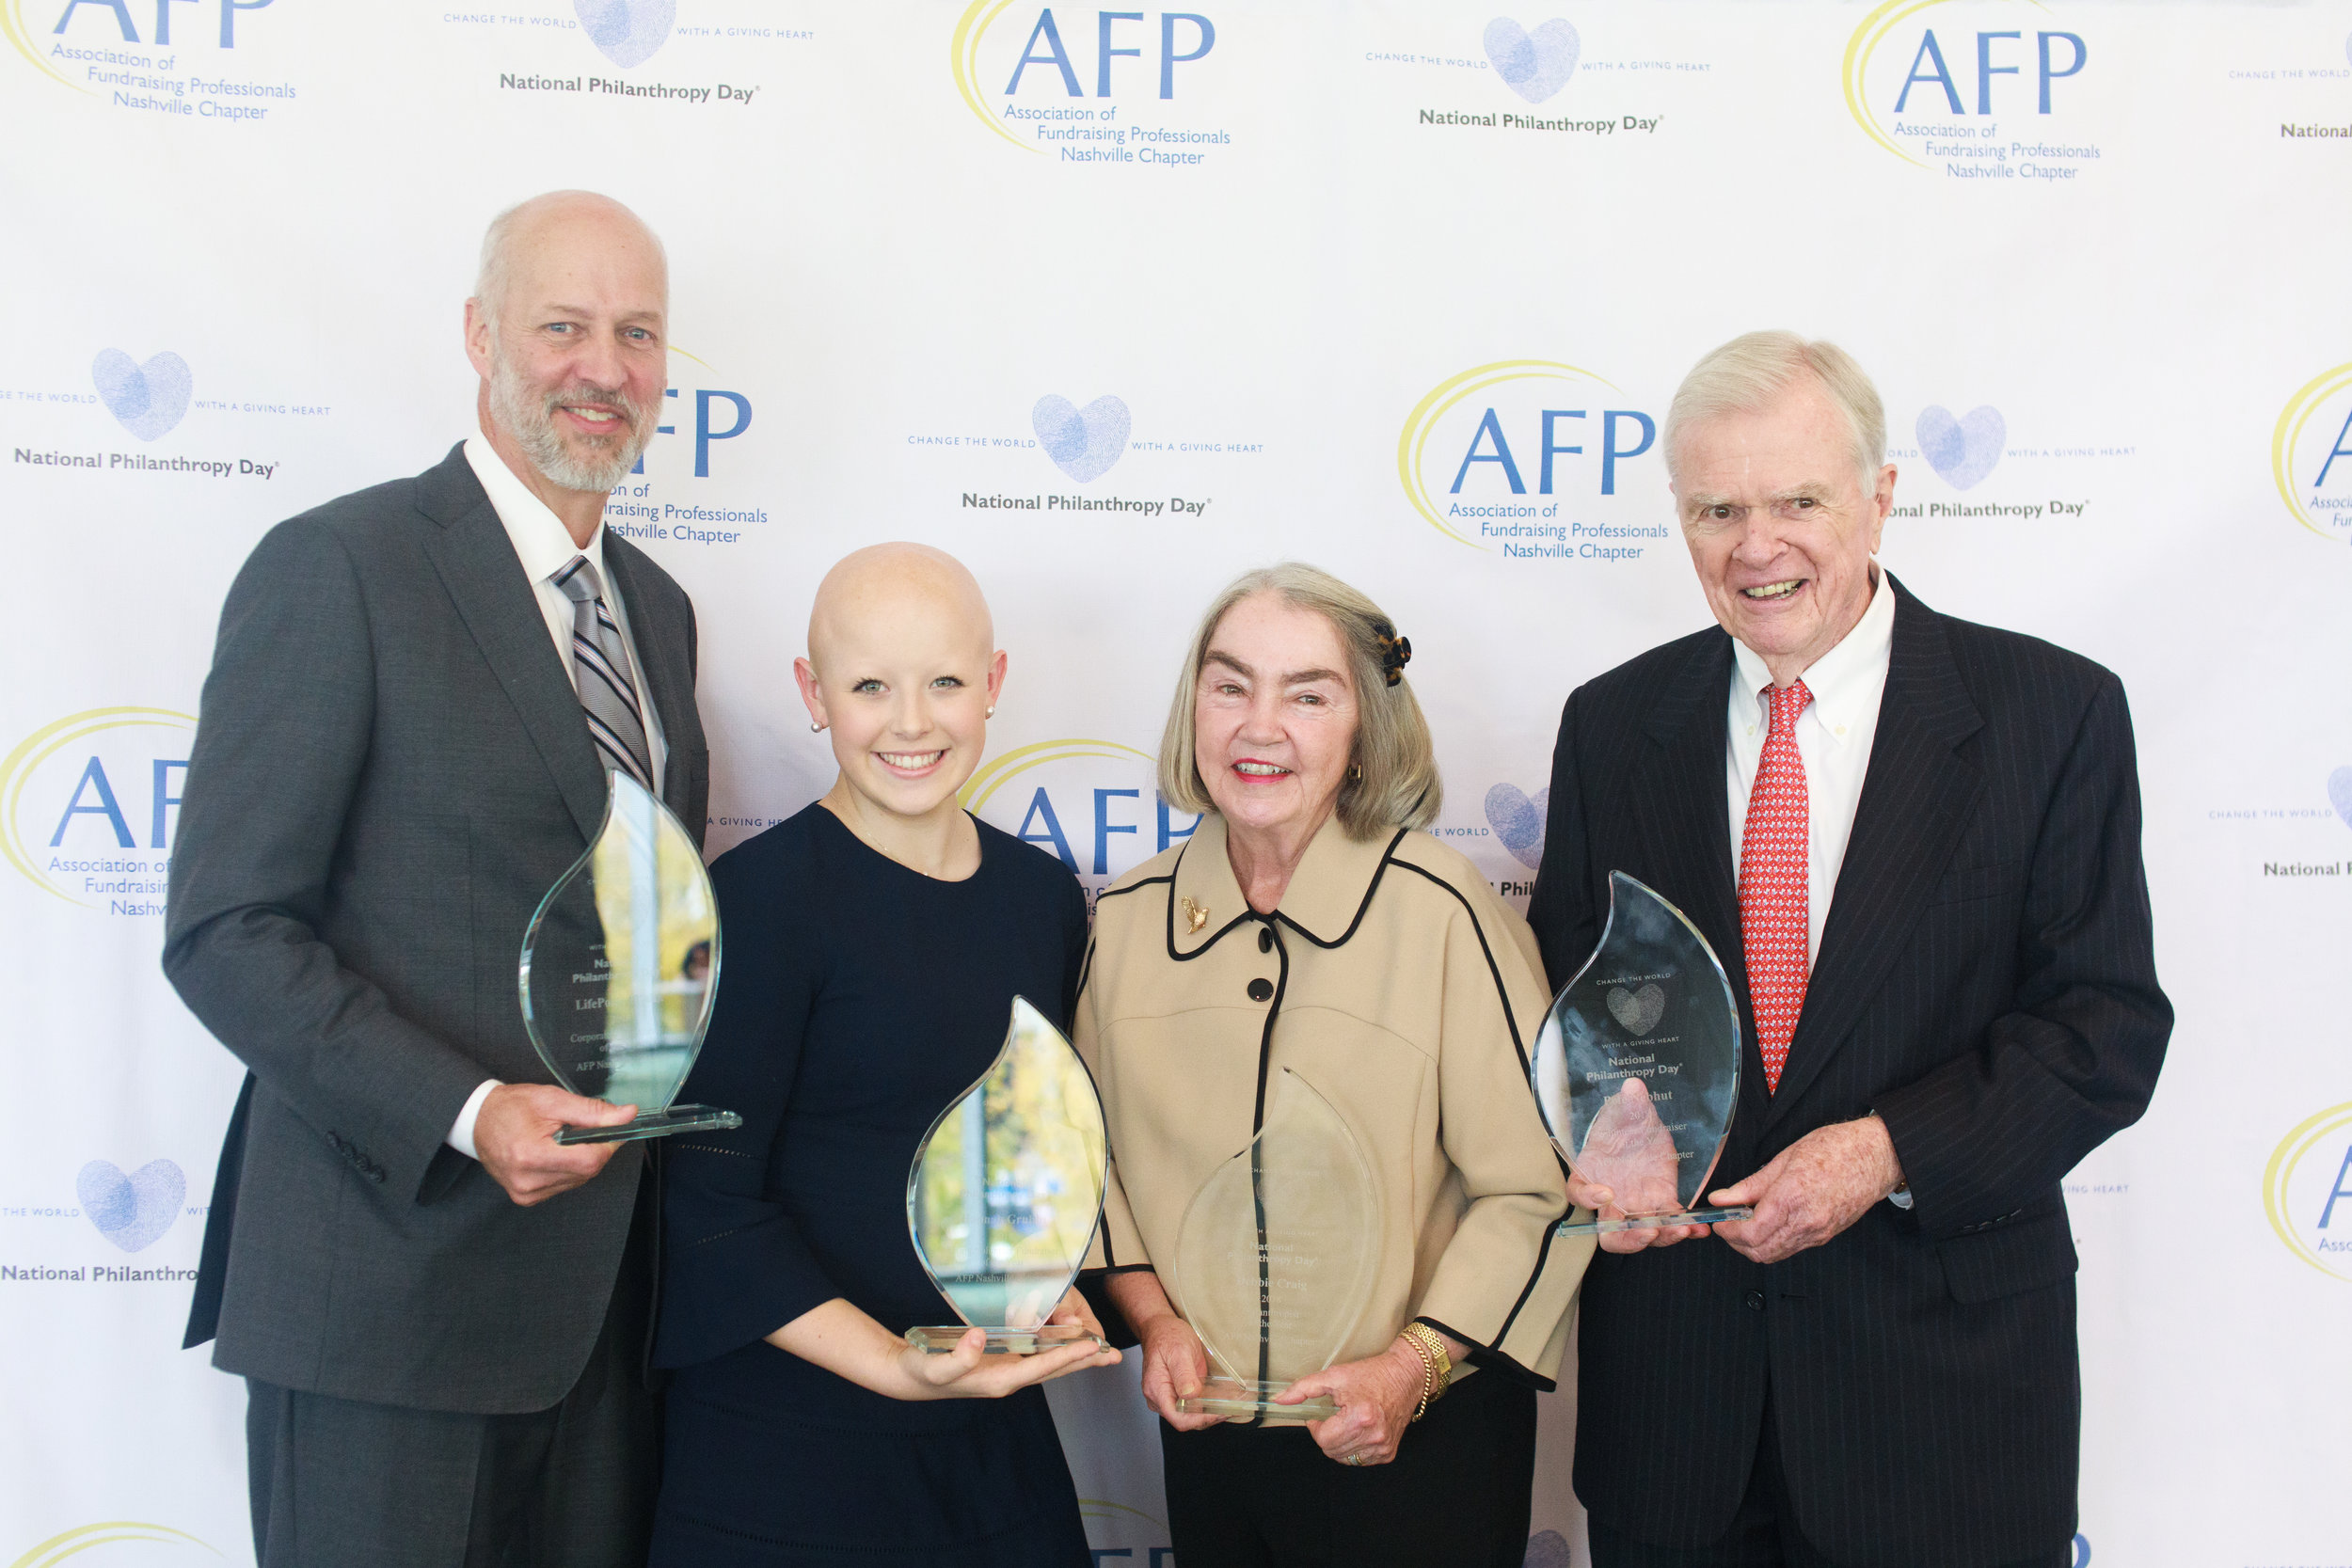 2018 NPD Honorees - John Bumpus, LifePoint Health - Corporate Philanthropist of the Year; Hannah Grubbs, Rising Volunteer Fundraiser of the Year; Debbie Craig, Philanthropist of the Year; Pete Nebhut, Volunteer Fundraiser of the Year.